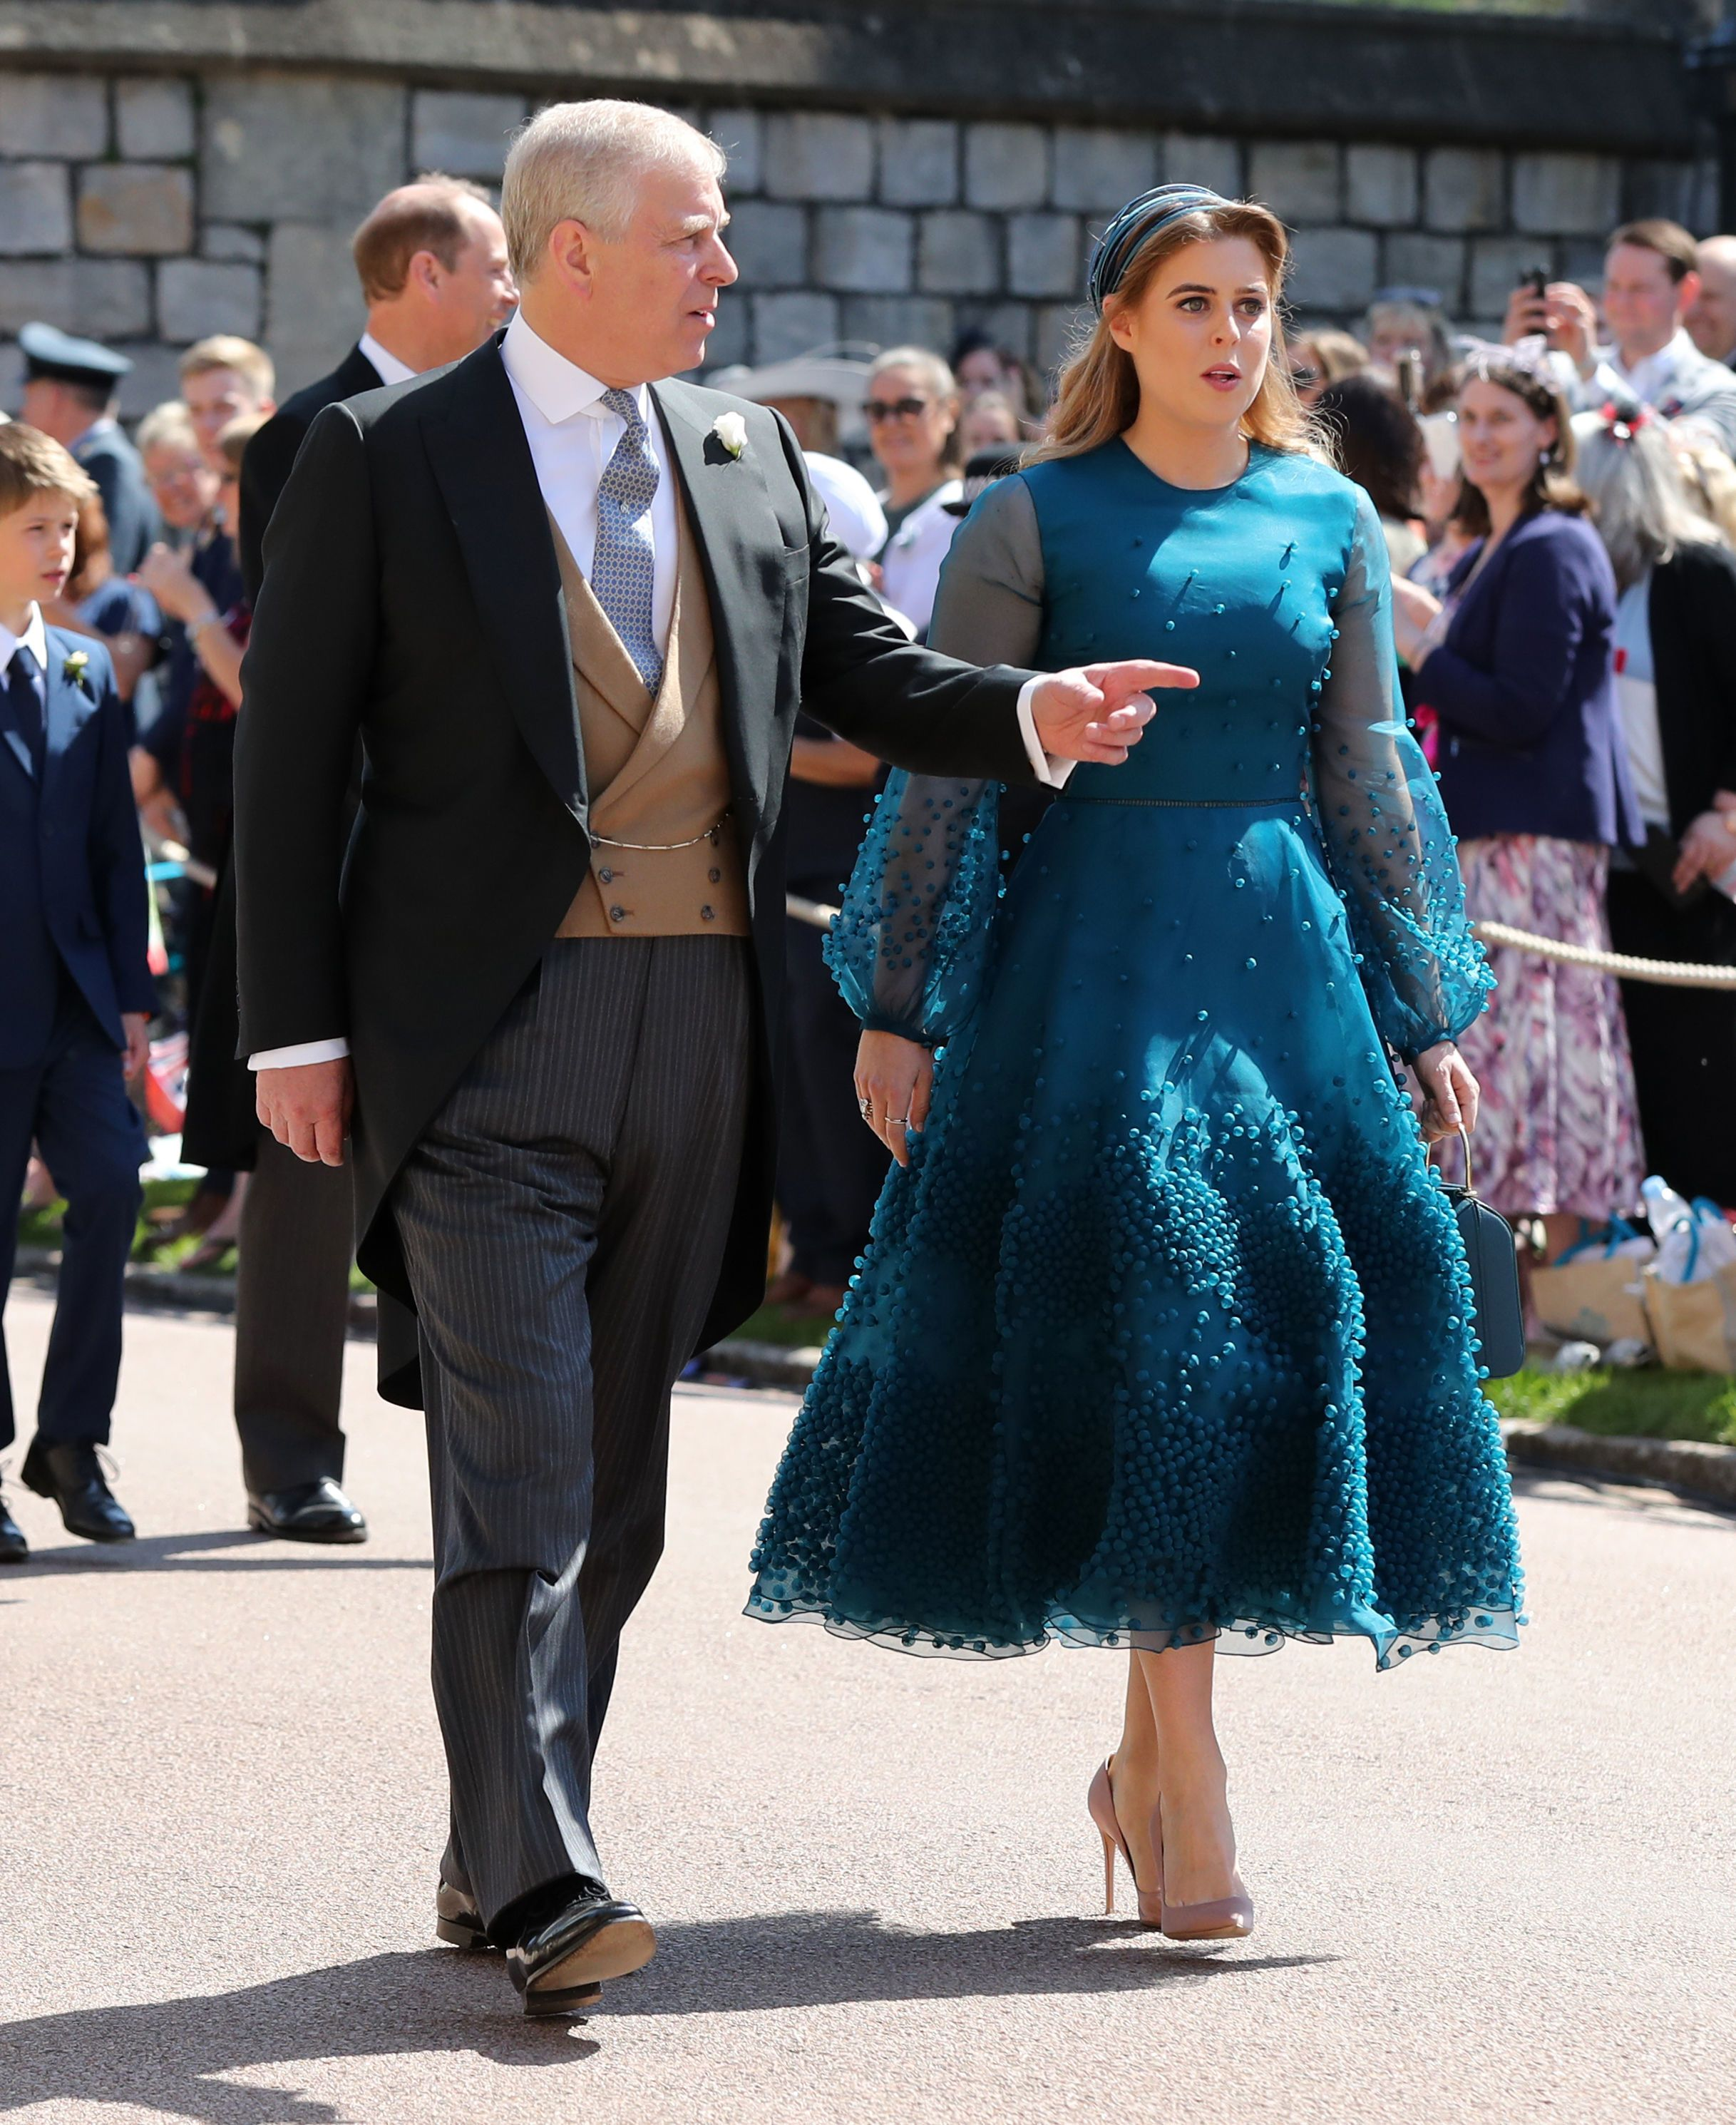 The Princess wears a bespoke Roksanda Viola dress with hand dyed teal silk organza and a Stephen Jones hat with Gianvito Rossi heels. More : Princess Beatrice's Most Fashionable Moments